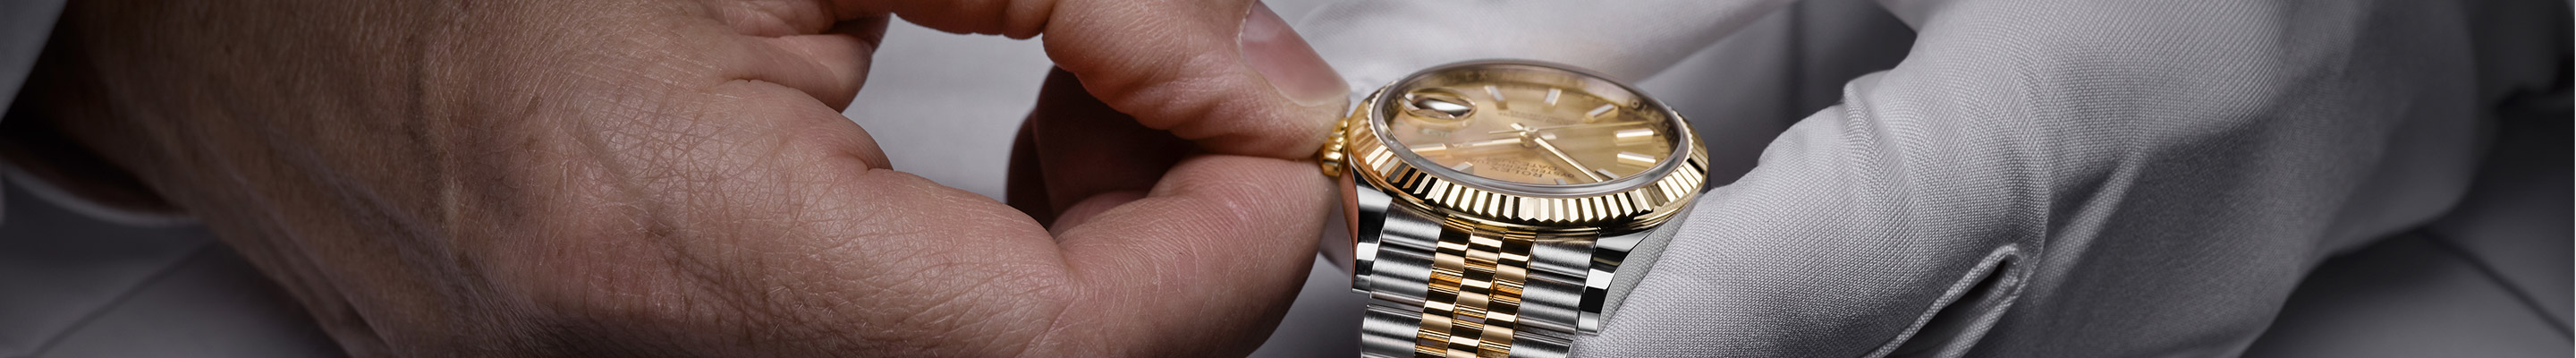 Servicing your Rolex at Goldfinger Jewelries - St. Martin St. Marteen St. Barthelémy - Caribbean